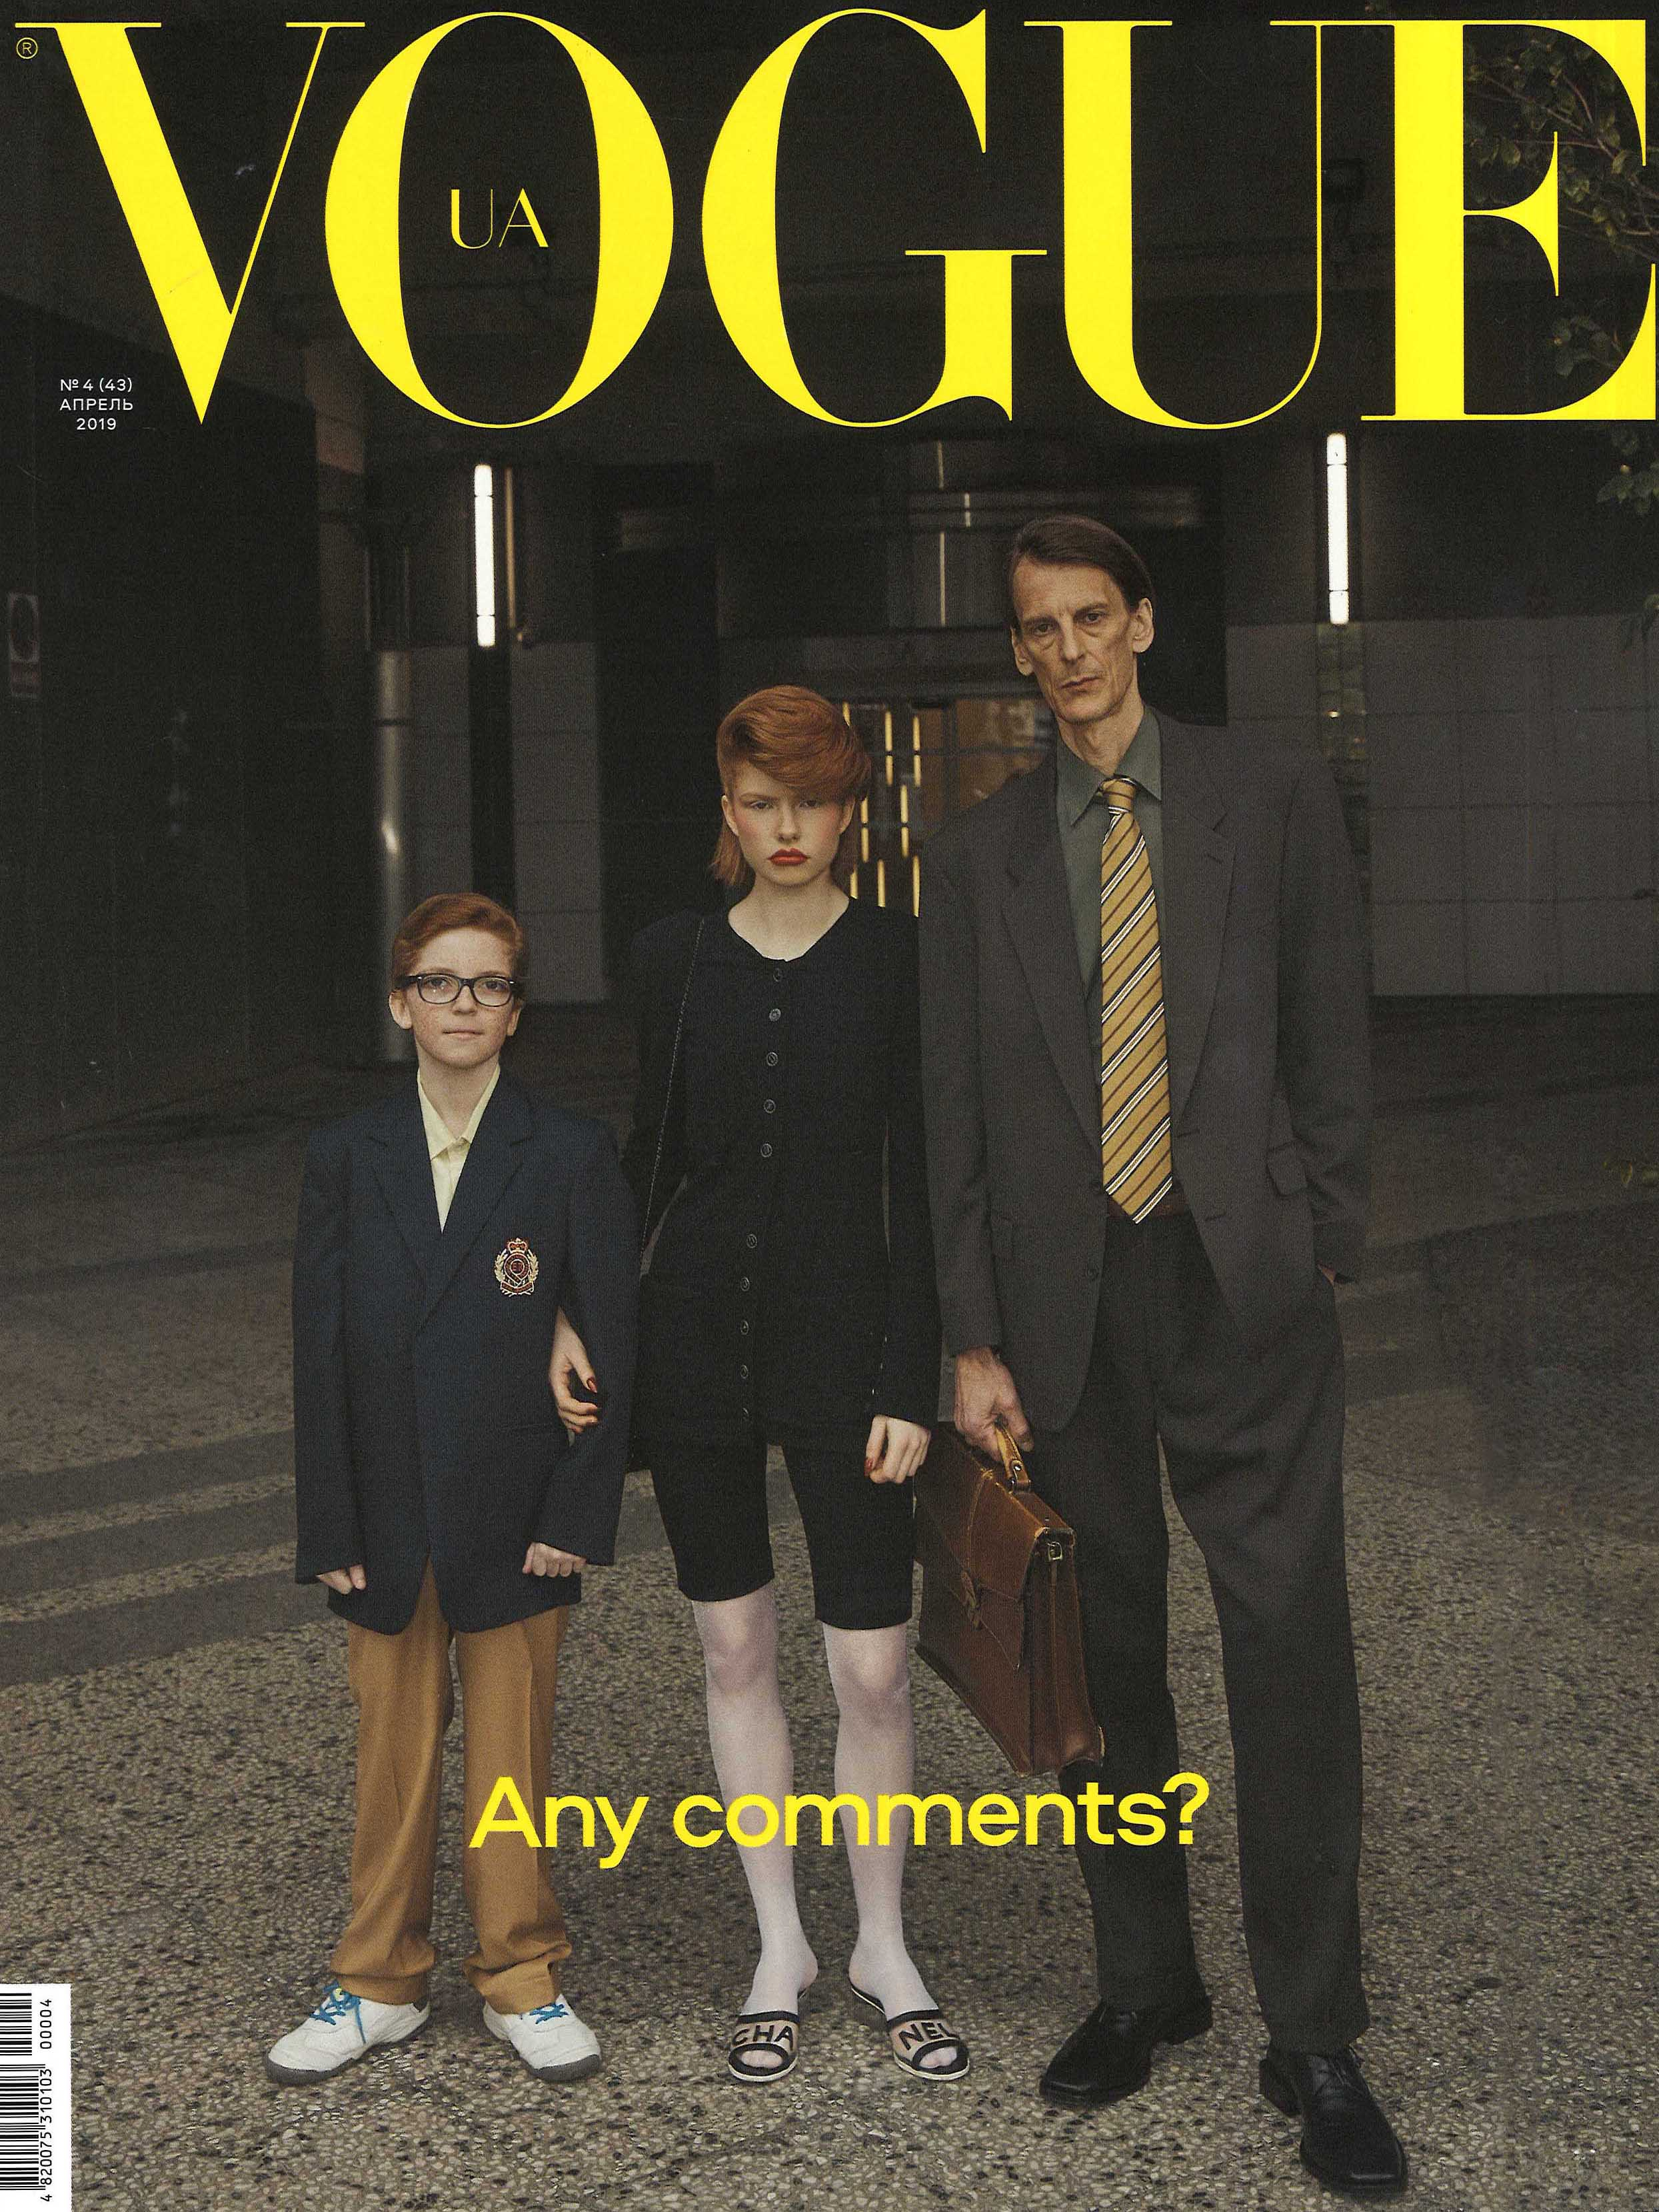 Vogue Ukraine April 2019 Cover.jpg